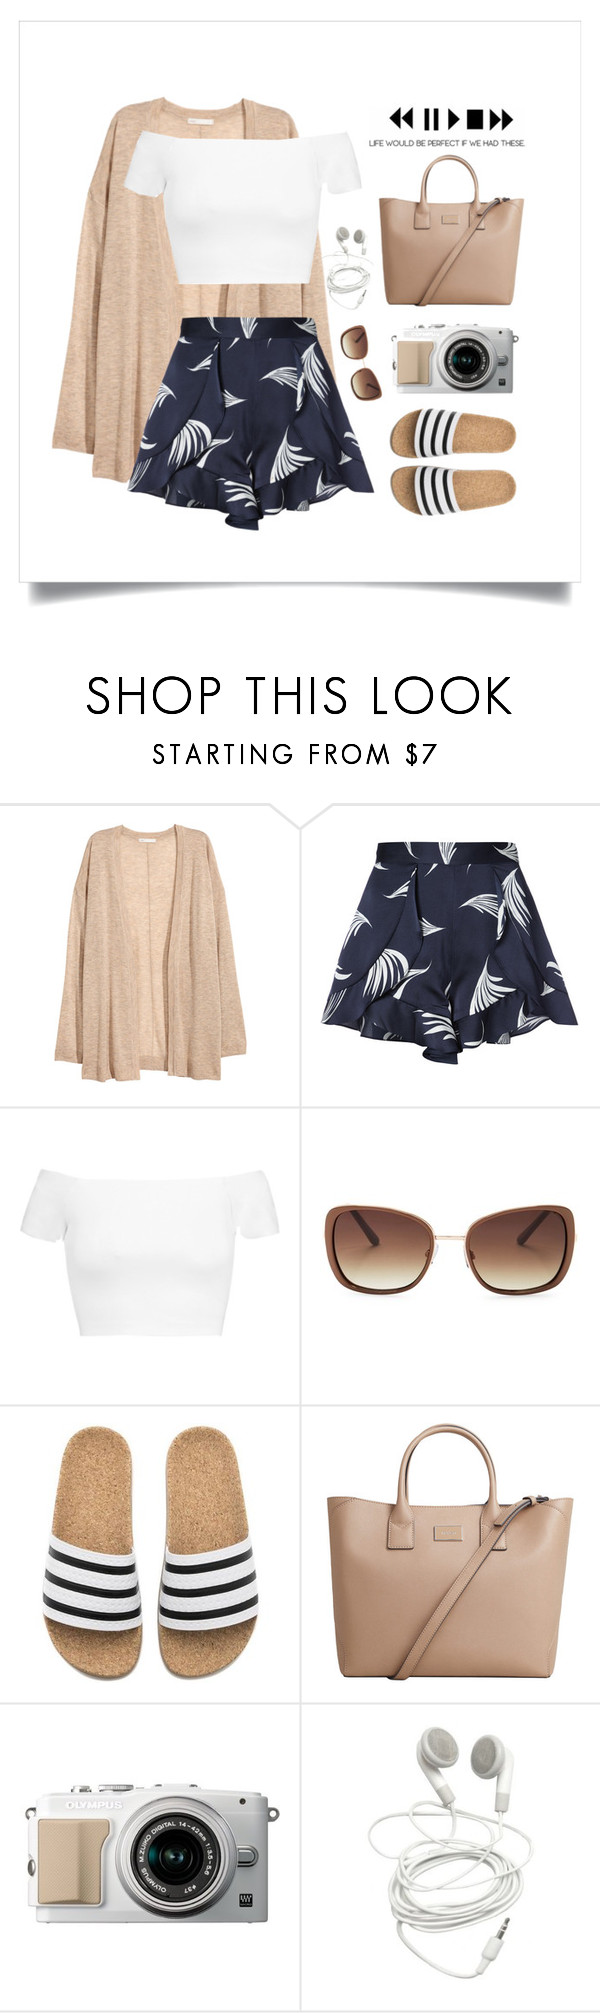 """Travel Enthusiast"" by thedailywear ❤ liked on Polyvore featuring C/MEO COLLECTIVE, Alice + Olivia, Lucky Brand, adidas and MANGO"